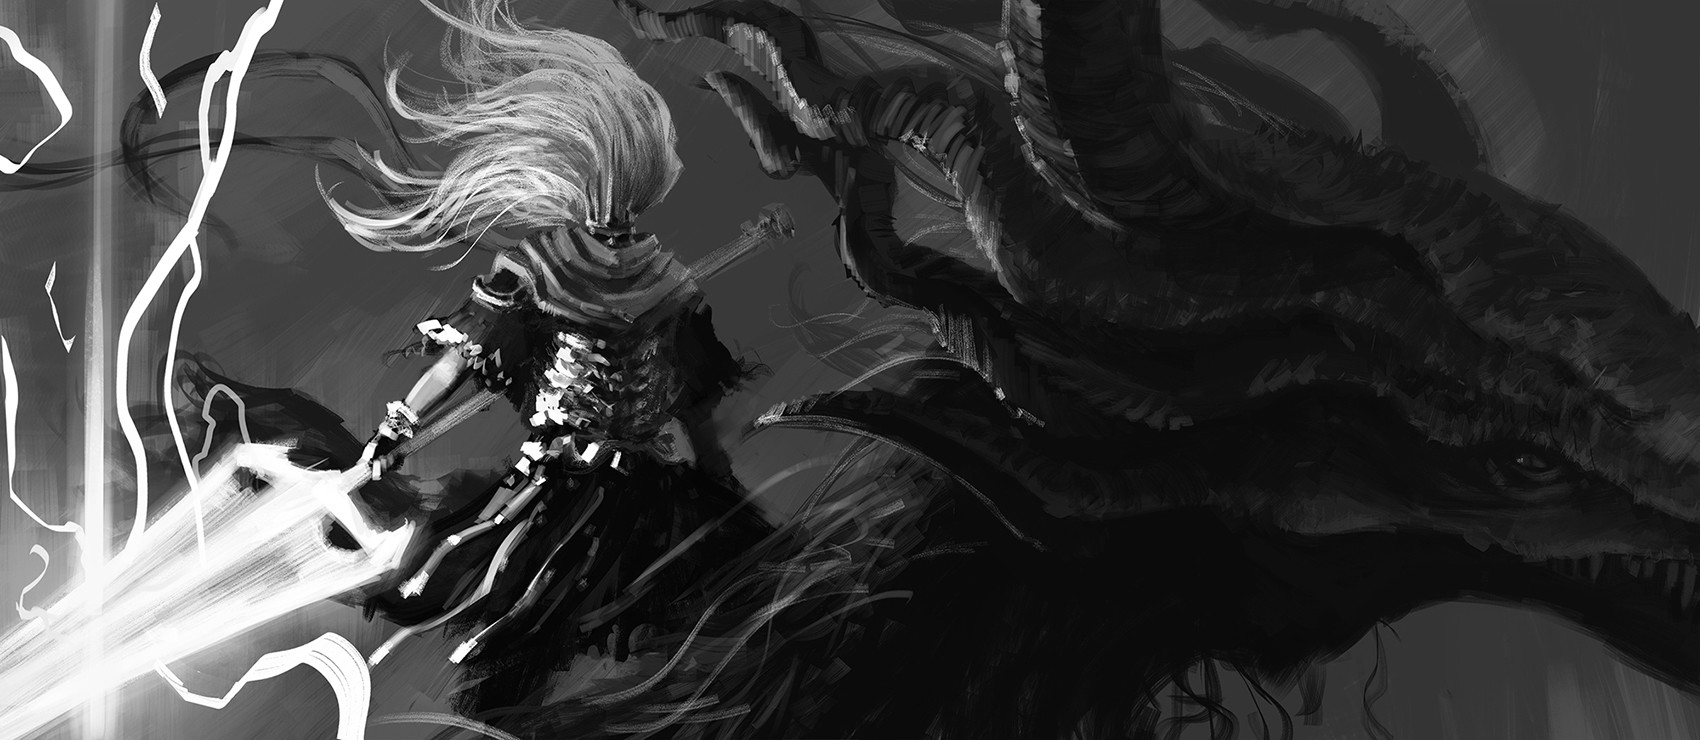 Fan art of Nameless King, from Dark Souls 3.